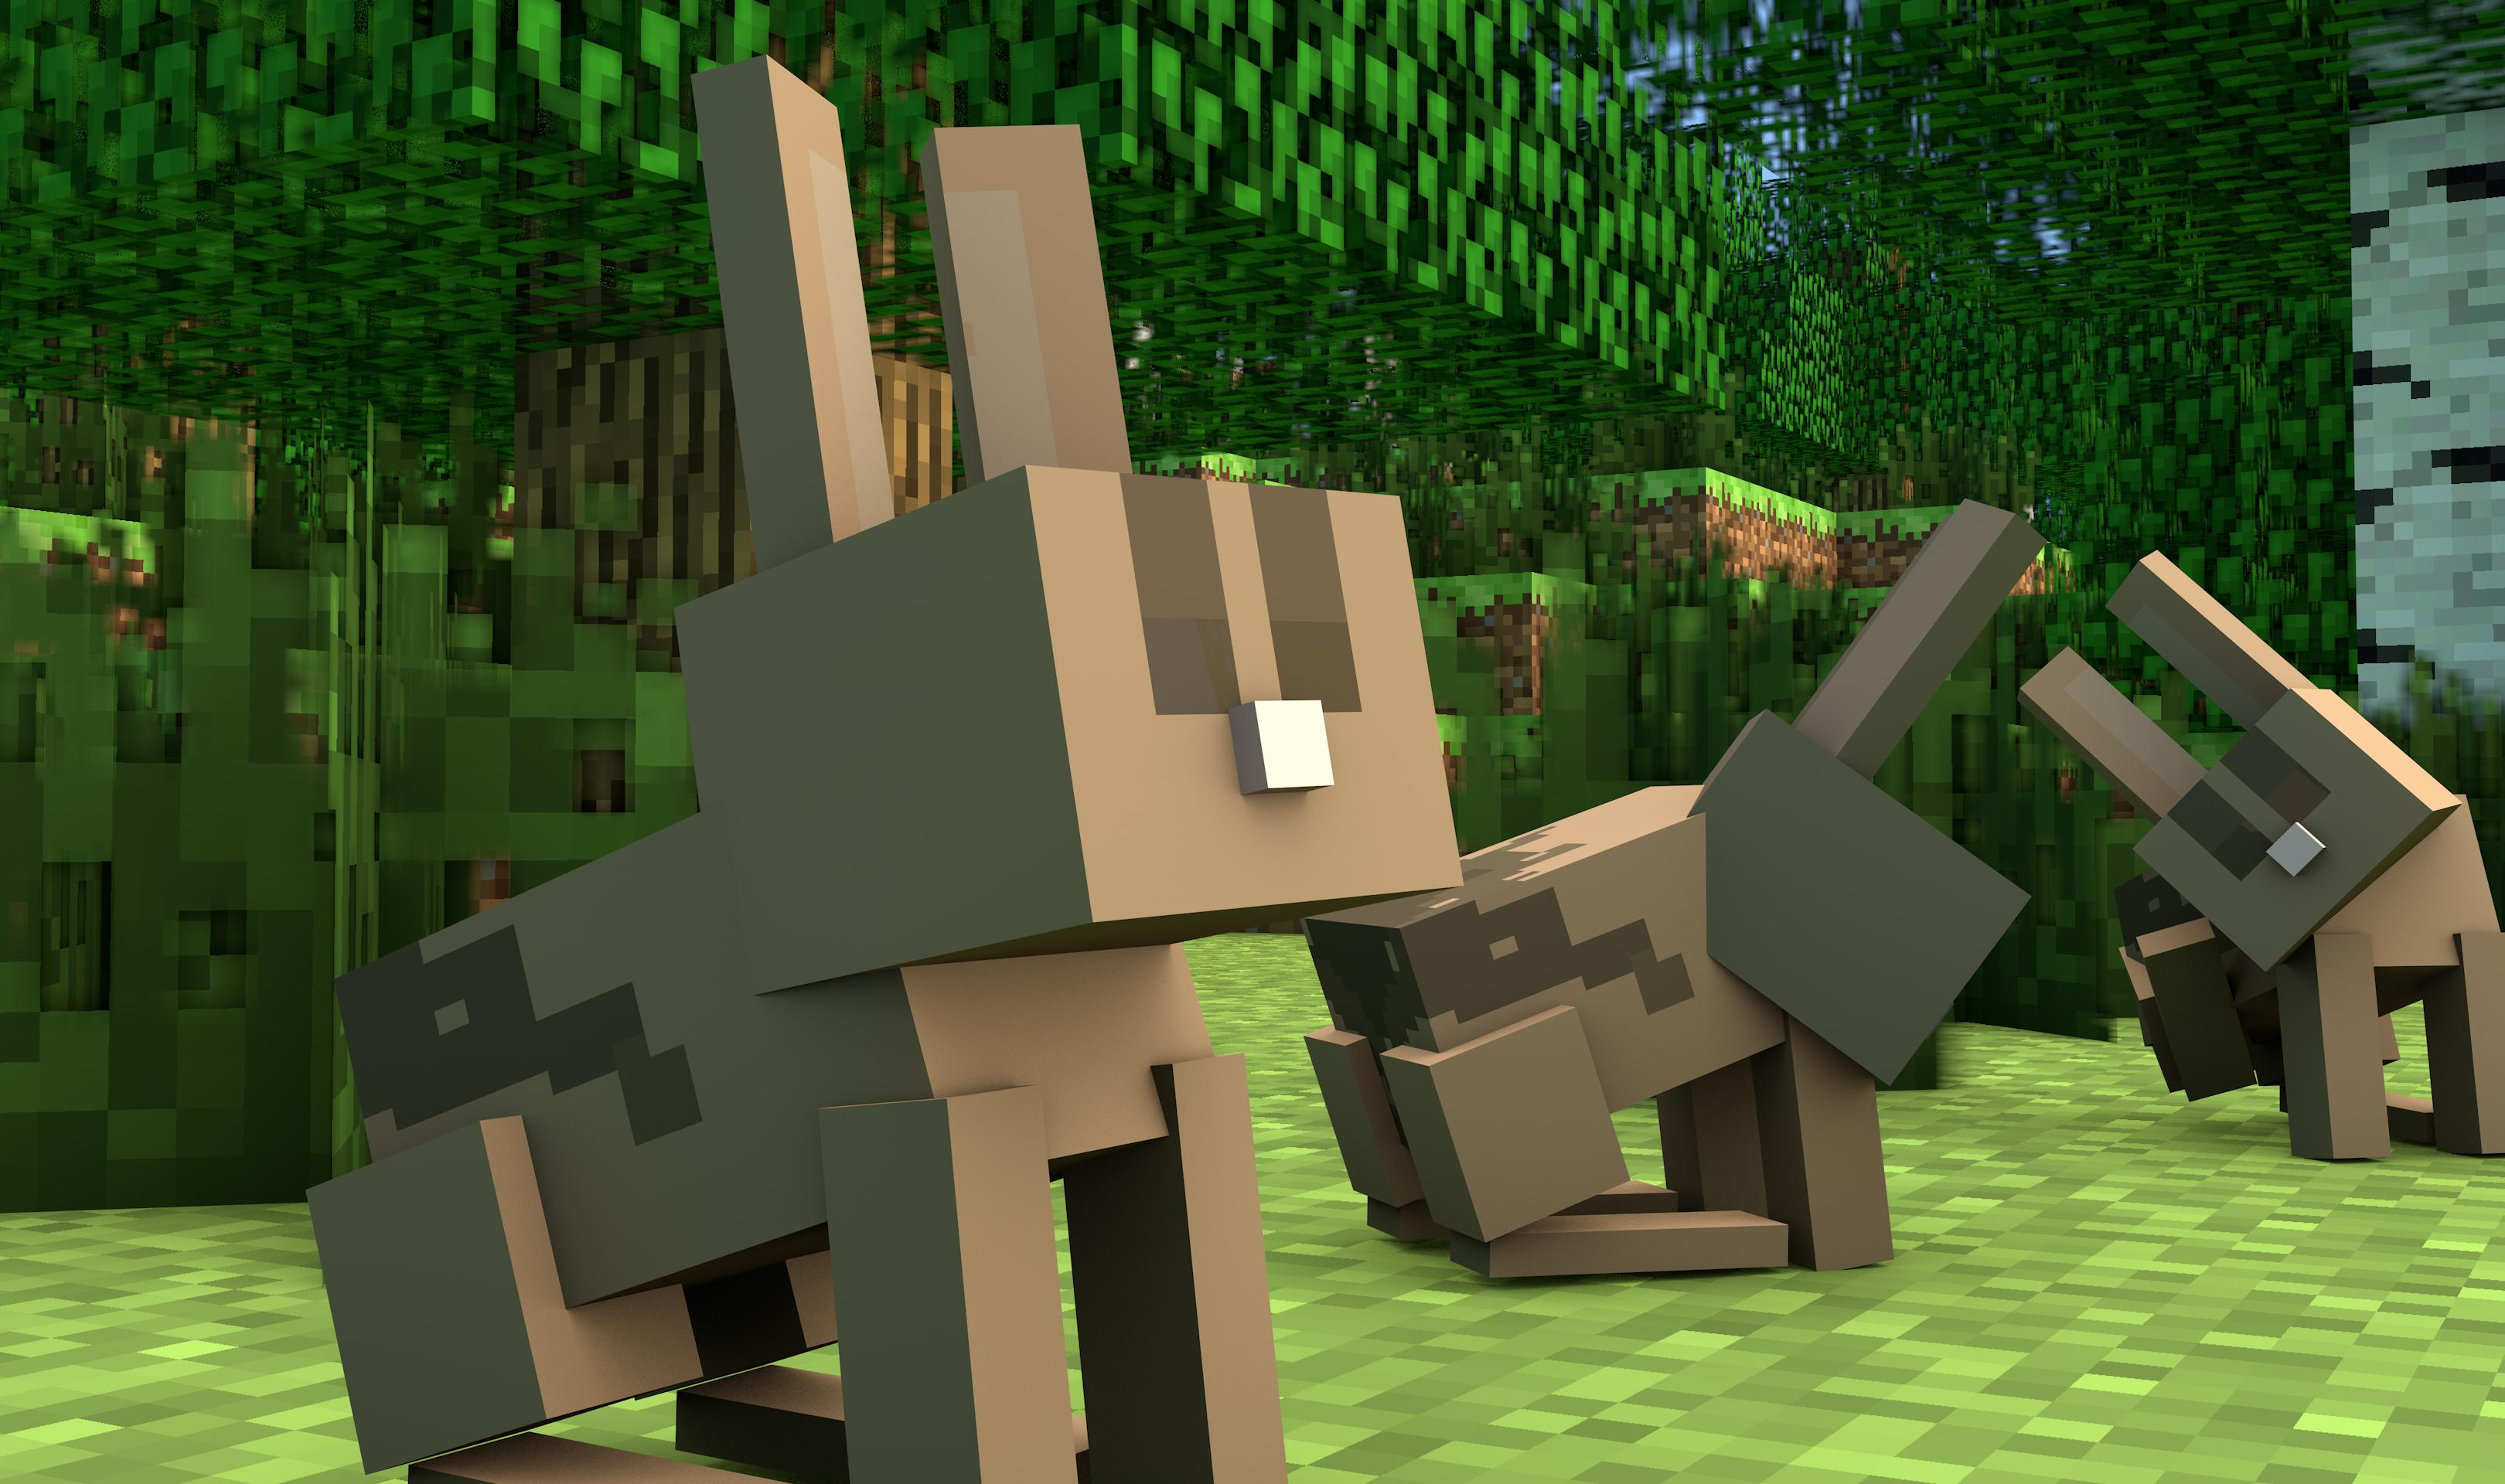 Minecraft 1.8 Bunnies Confirmed